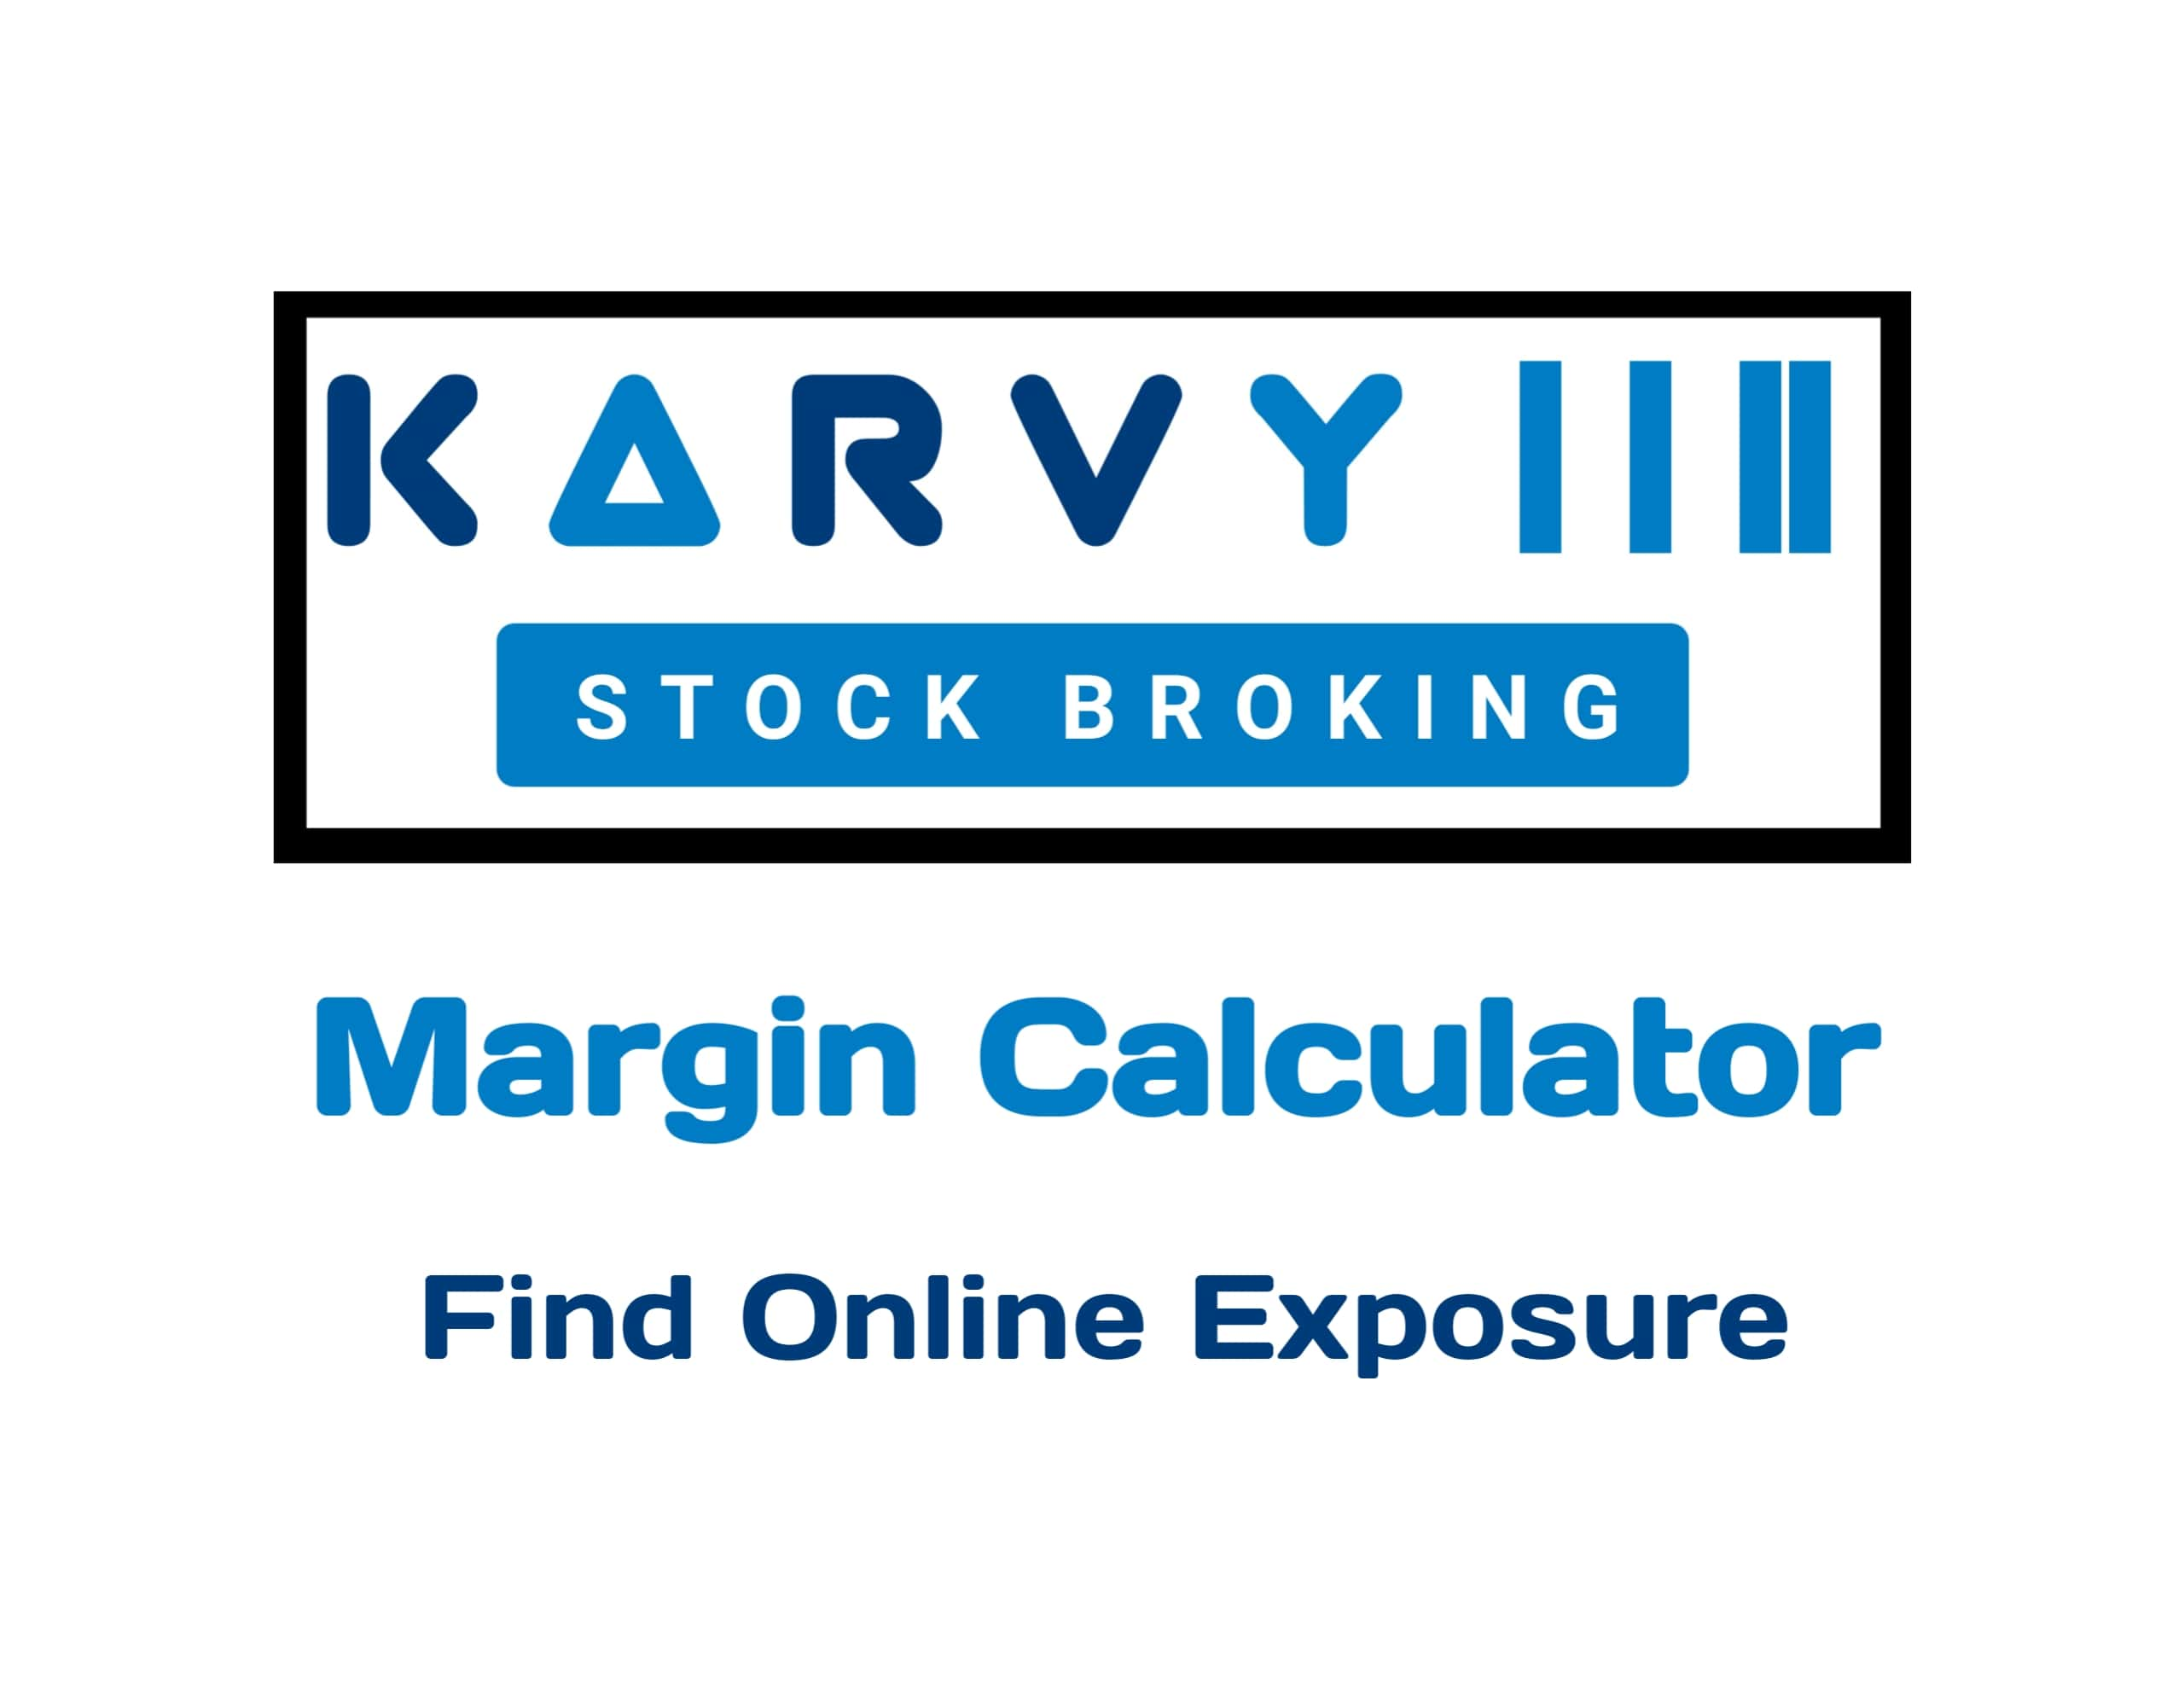 Karvy Margin Calculator